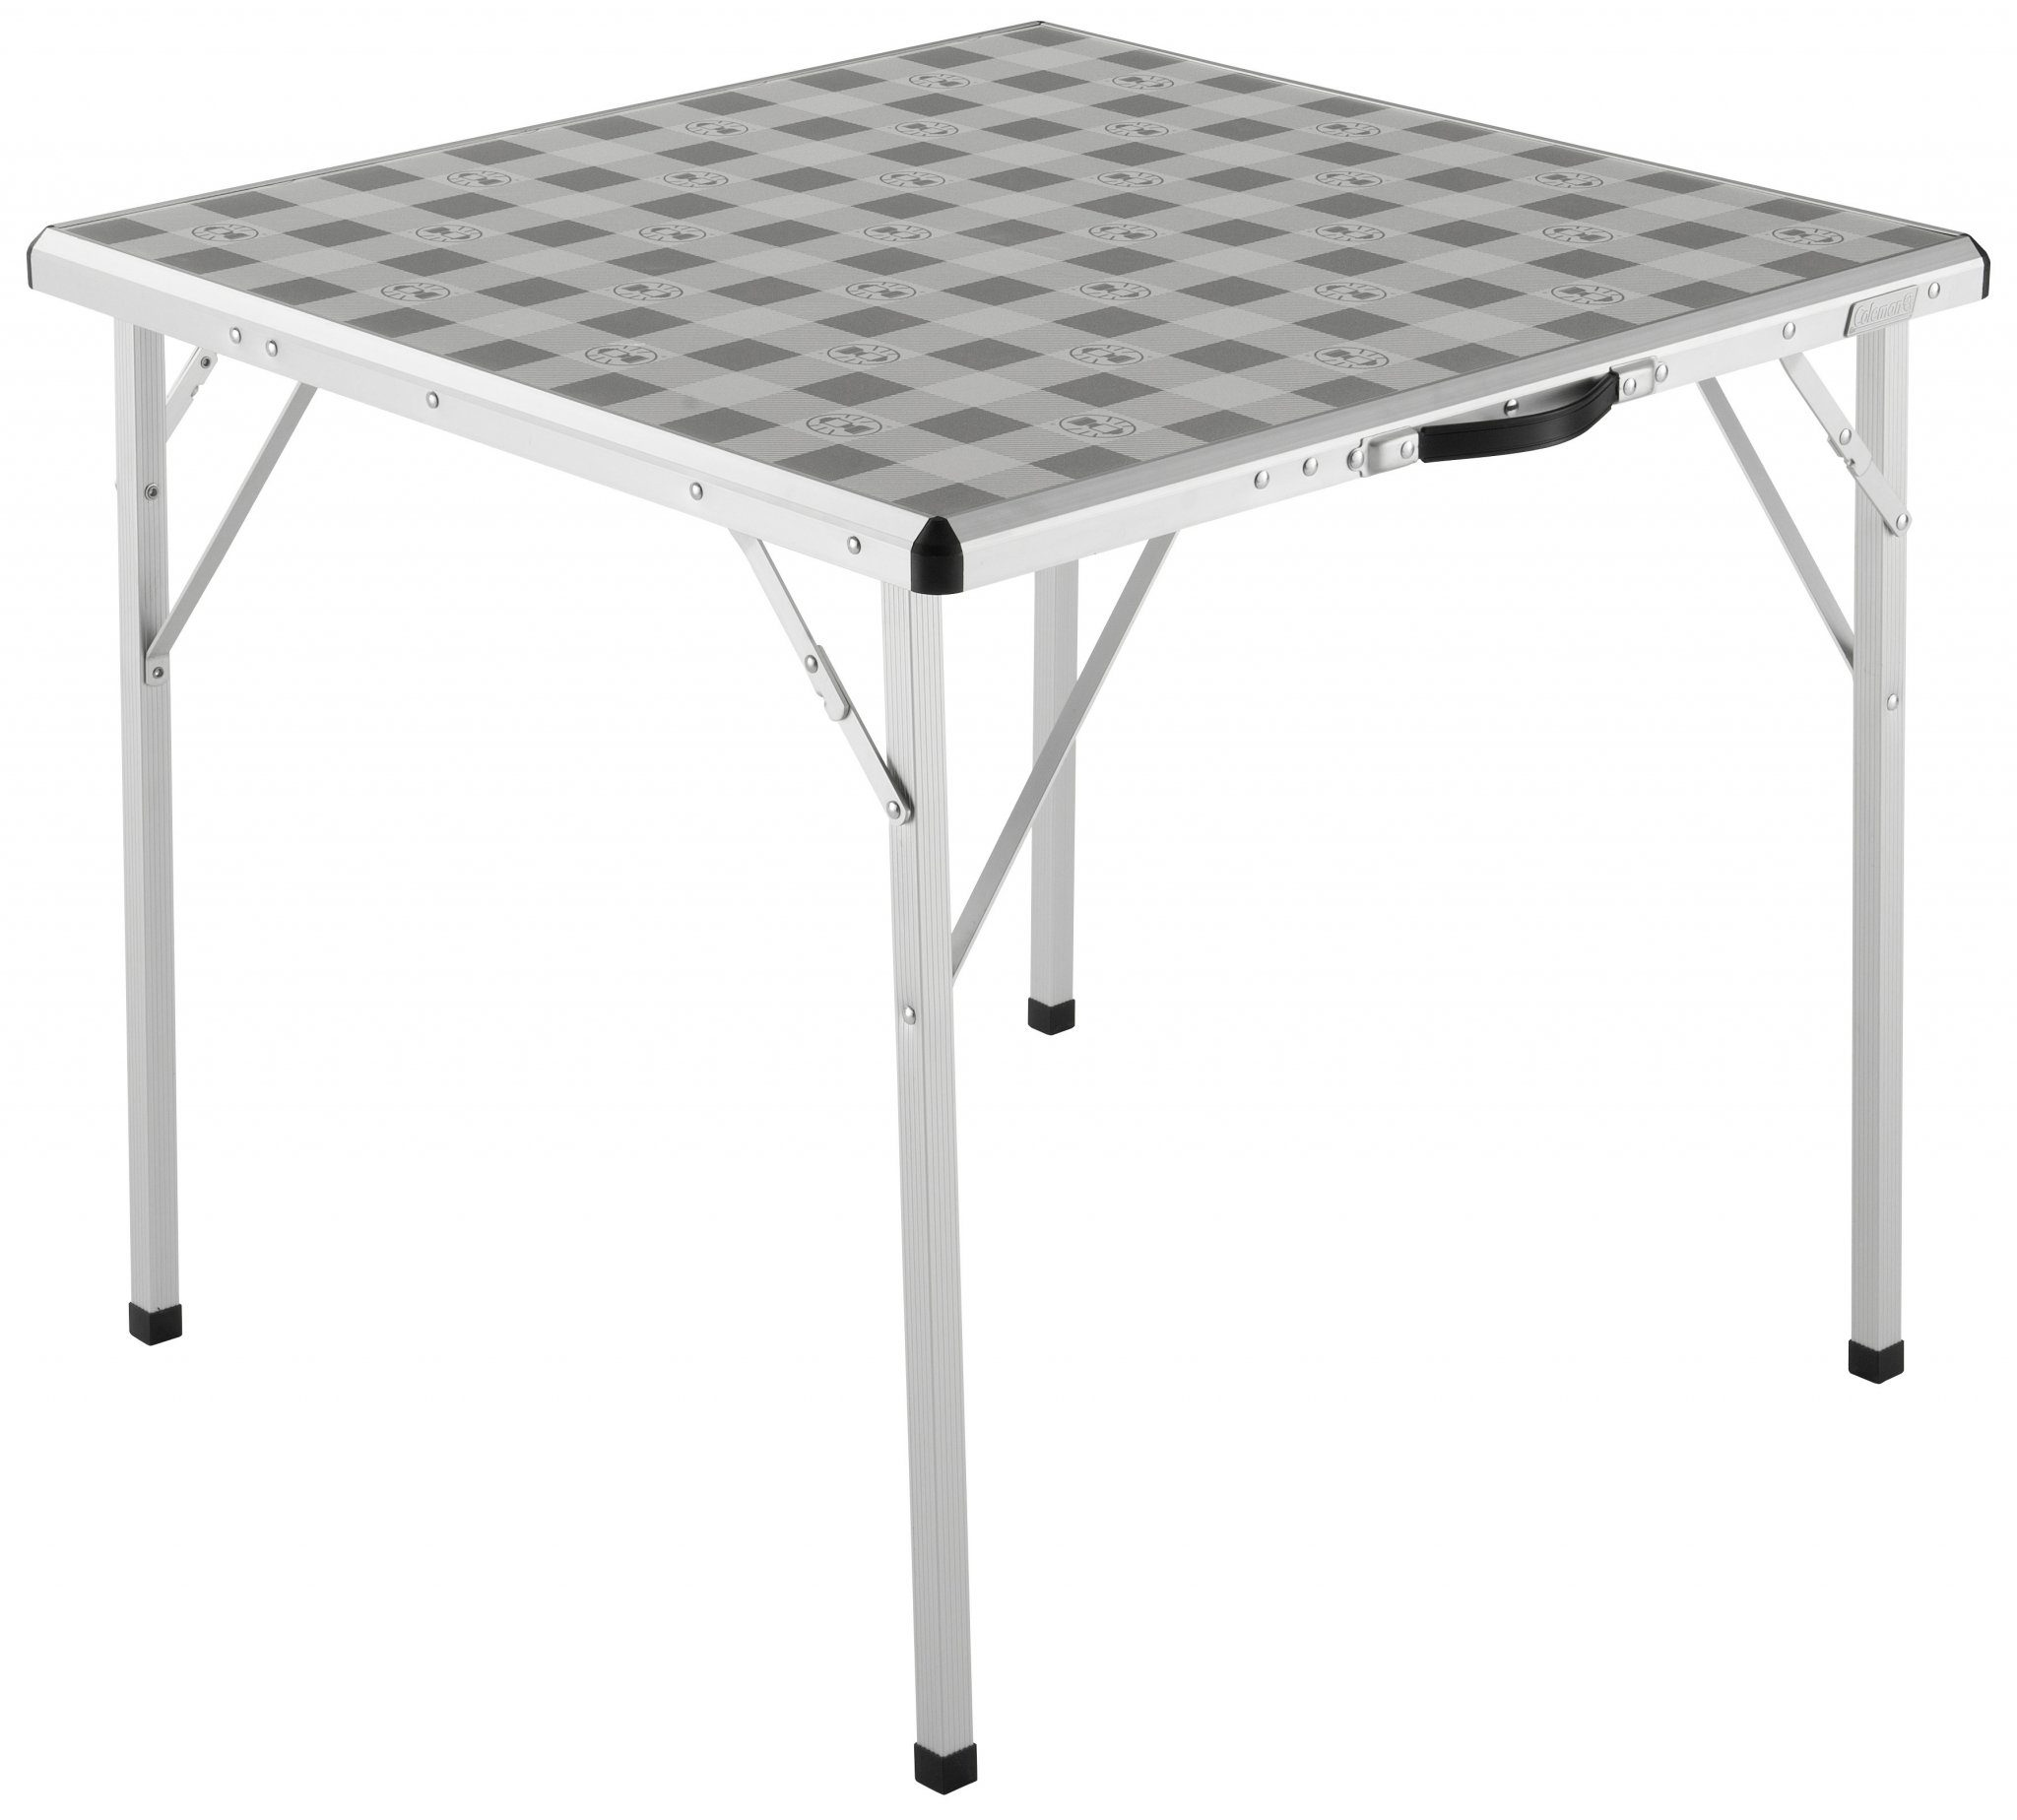 COLEMAN Camping Tisch »Camping Table square«